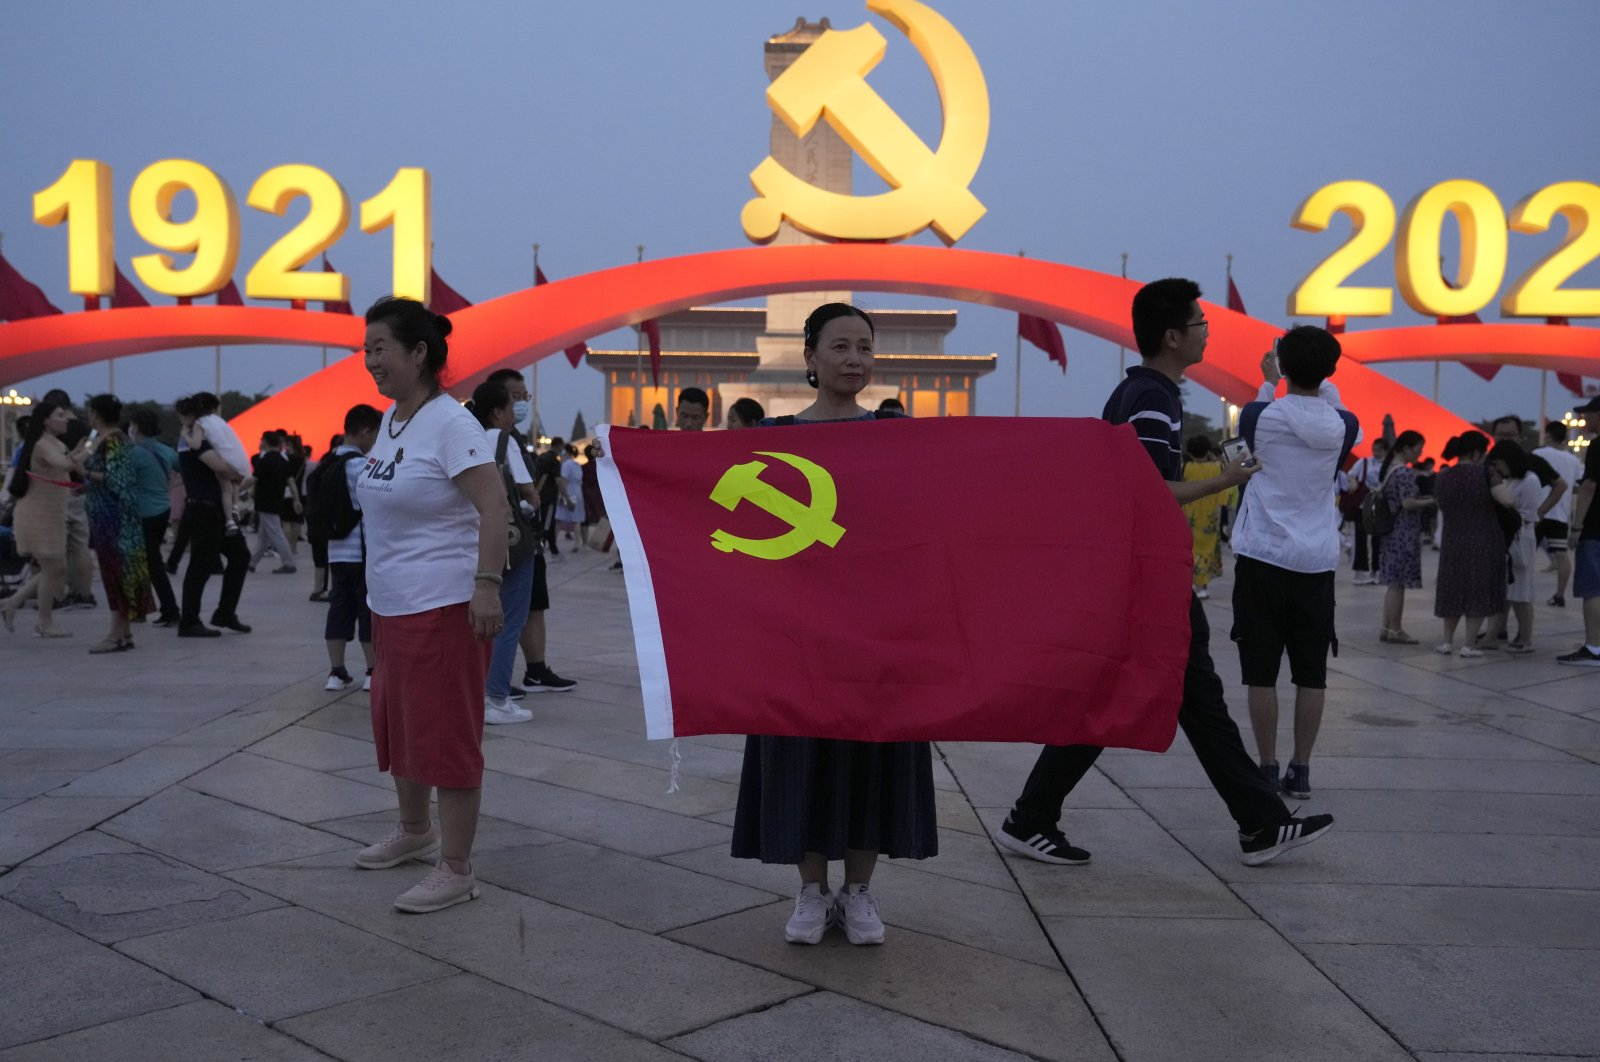 A woman holds up a Communist Party flag as she poses for photos near decorations to mark the 100th anniversary of the founding of the ruling Chinese Communist Party on Tiananmen Square in Beijing, China, on July 15, 2021. (AP Photo)